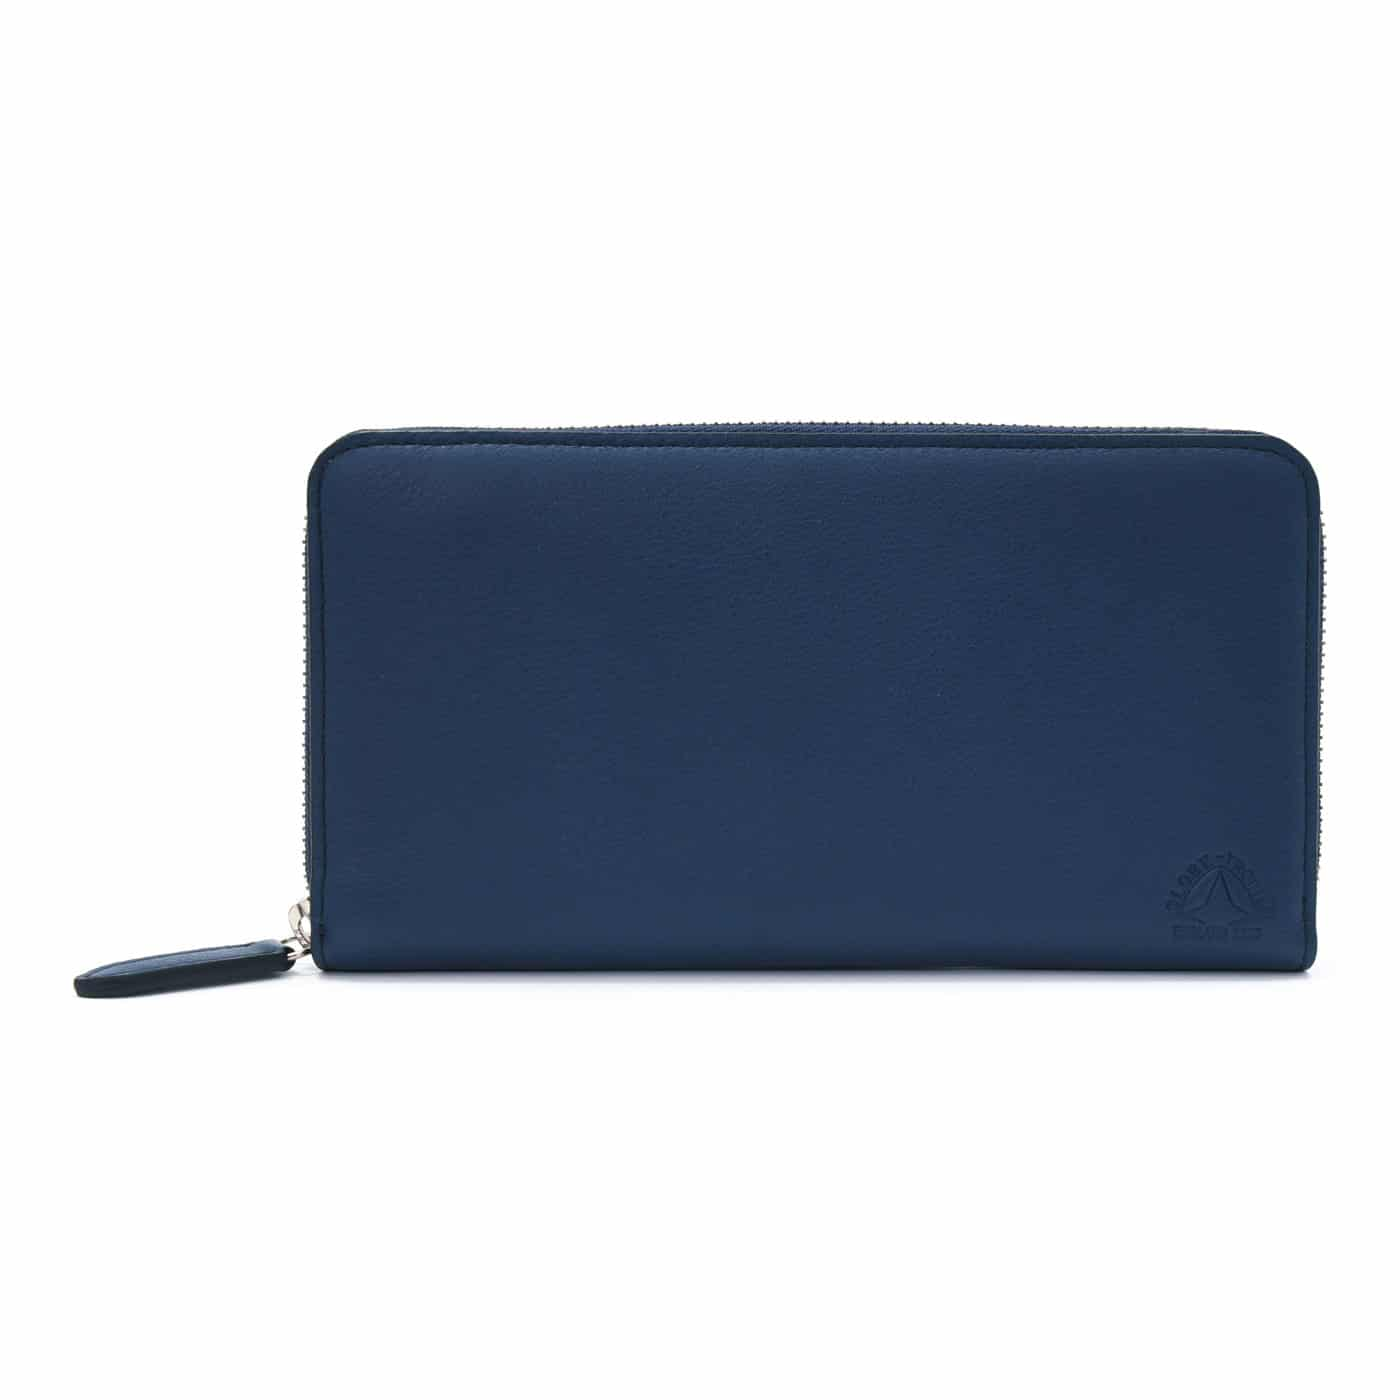 Centenary Leather · Large Zip Around Purse - Navy